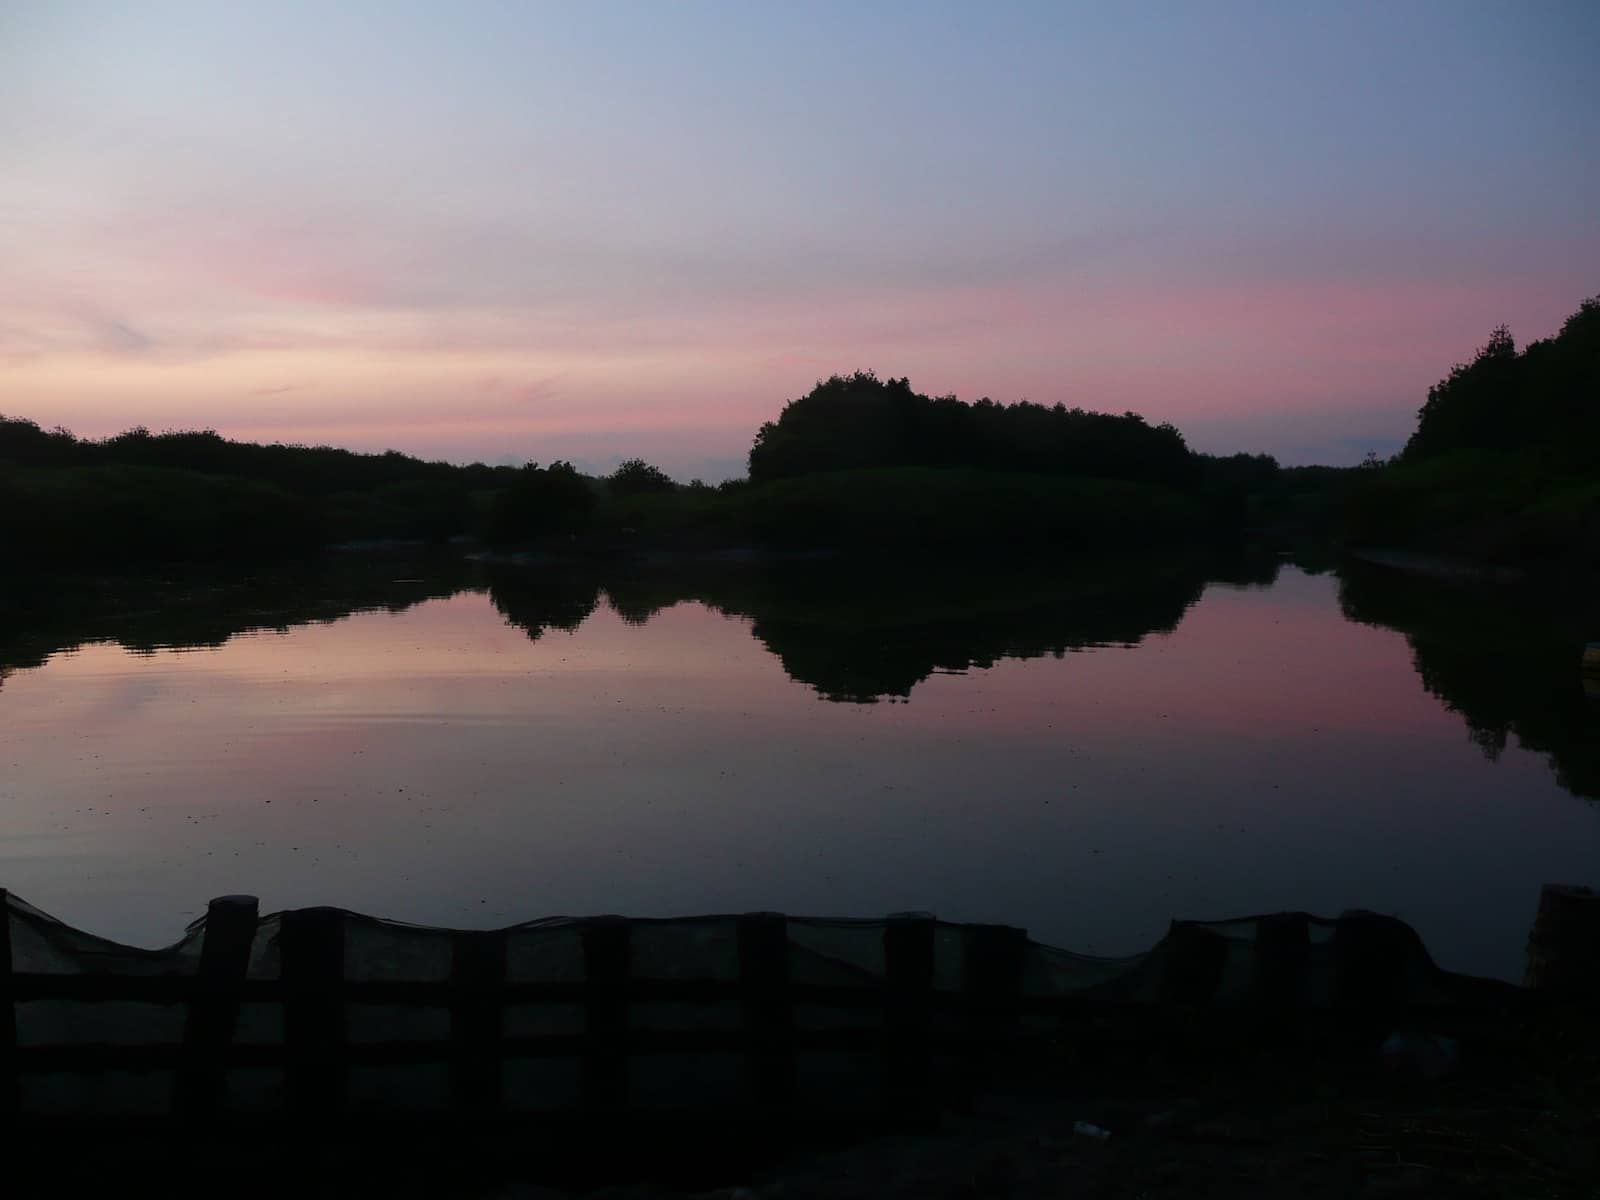 Image of the sun setting over a shrimp pond in Mui Cao Mao in Vietnam